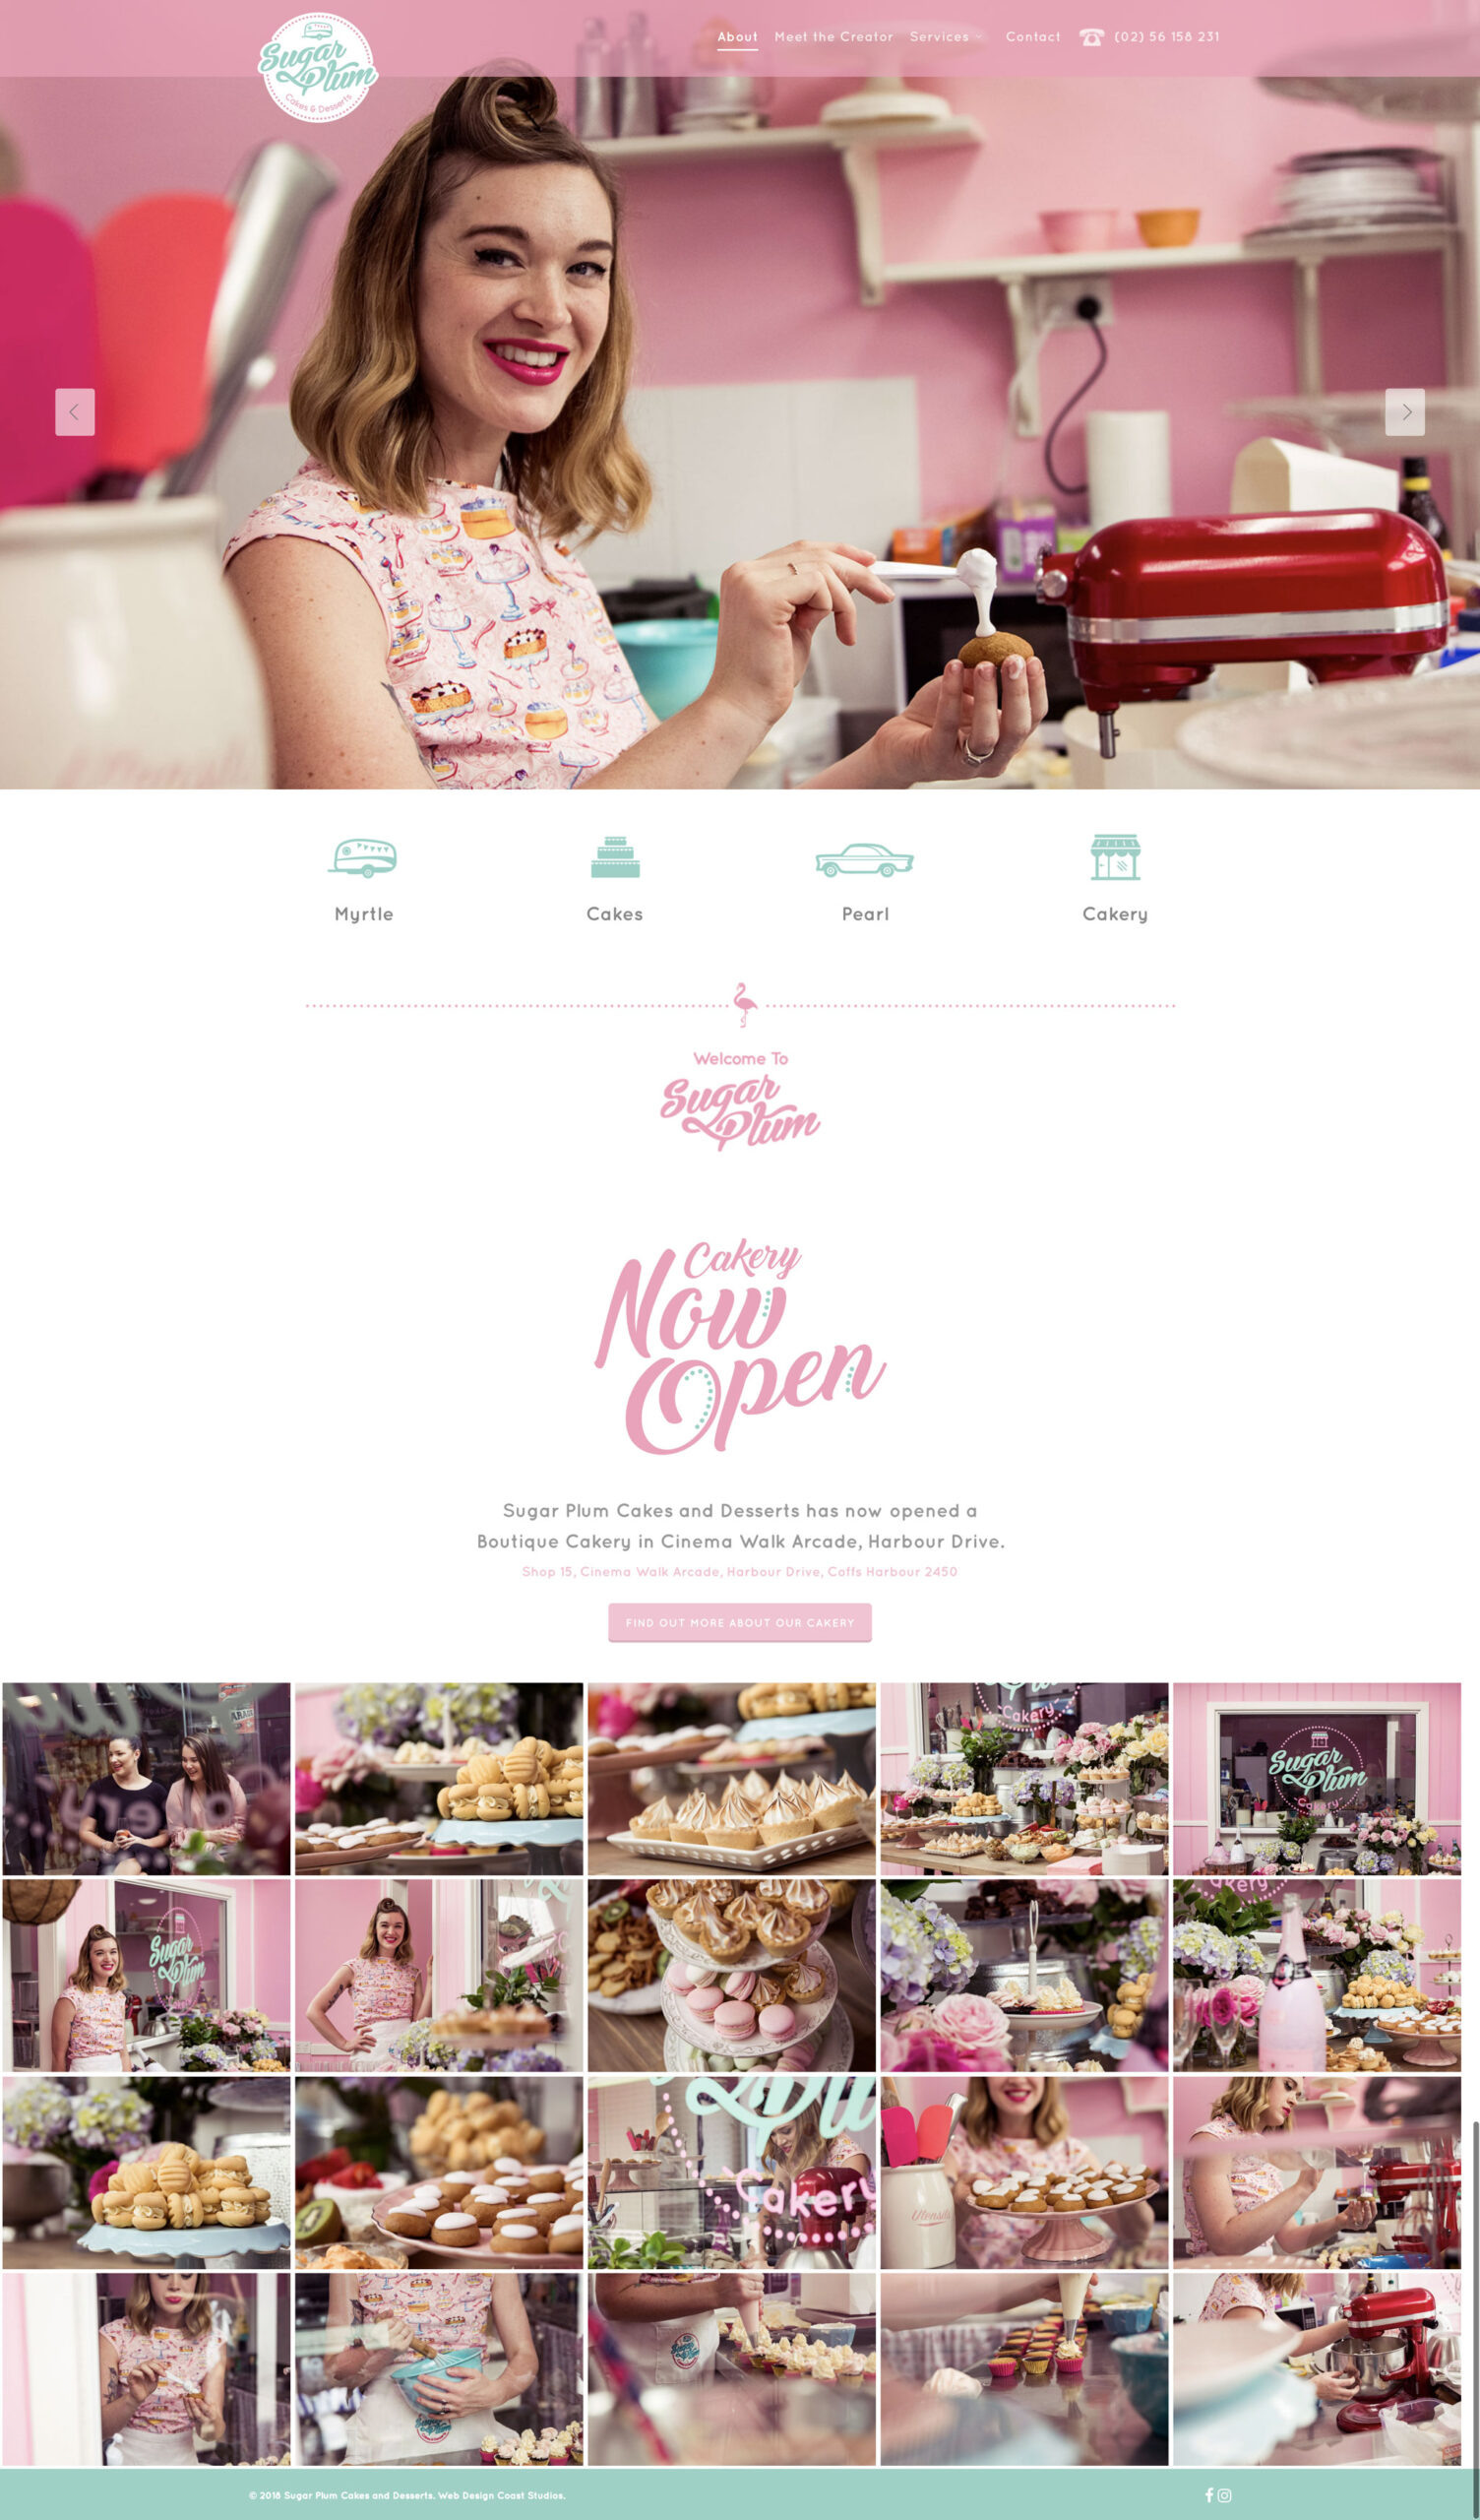 Website Design & Development for Sugar Plum